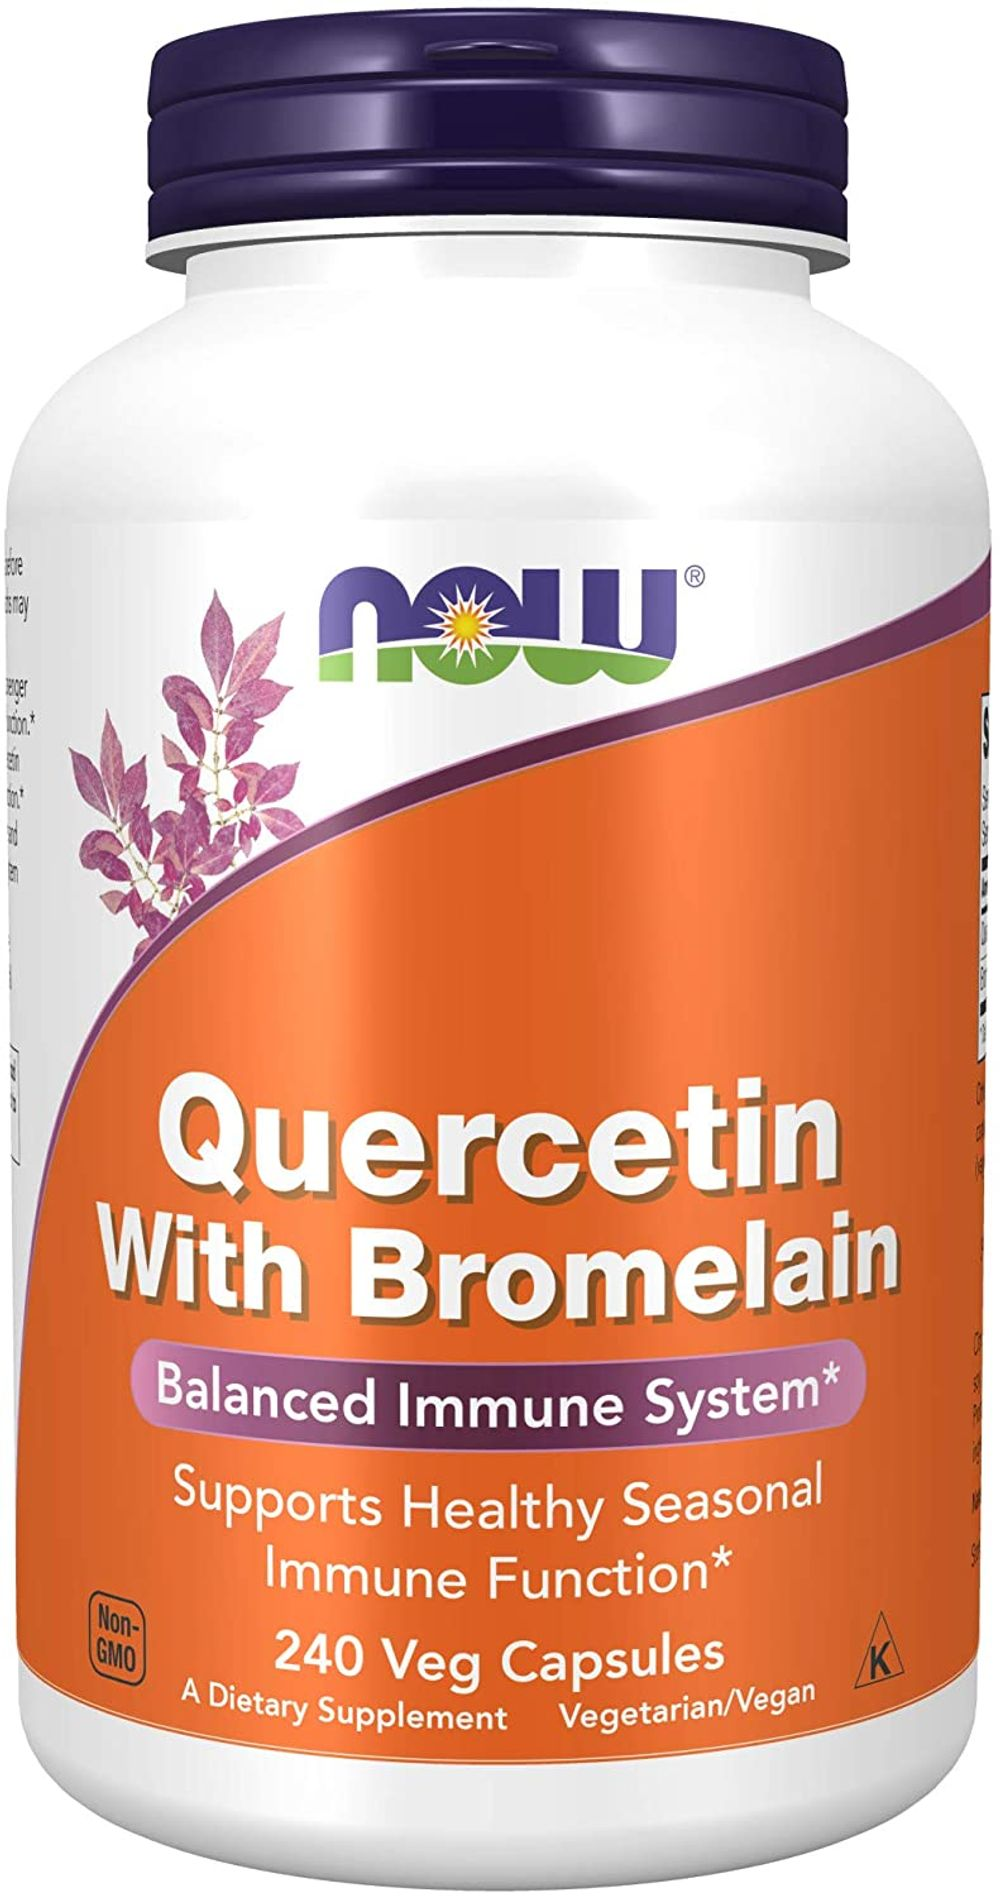 NOW Foods Supplements, Quercetin with Bromelain, Balanced Immune System, 240 Veg Capsules